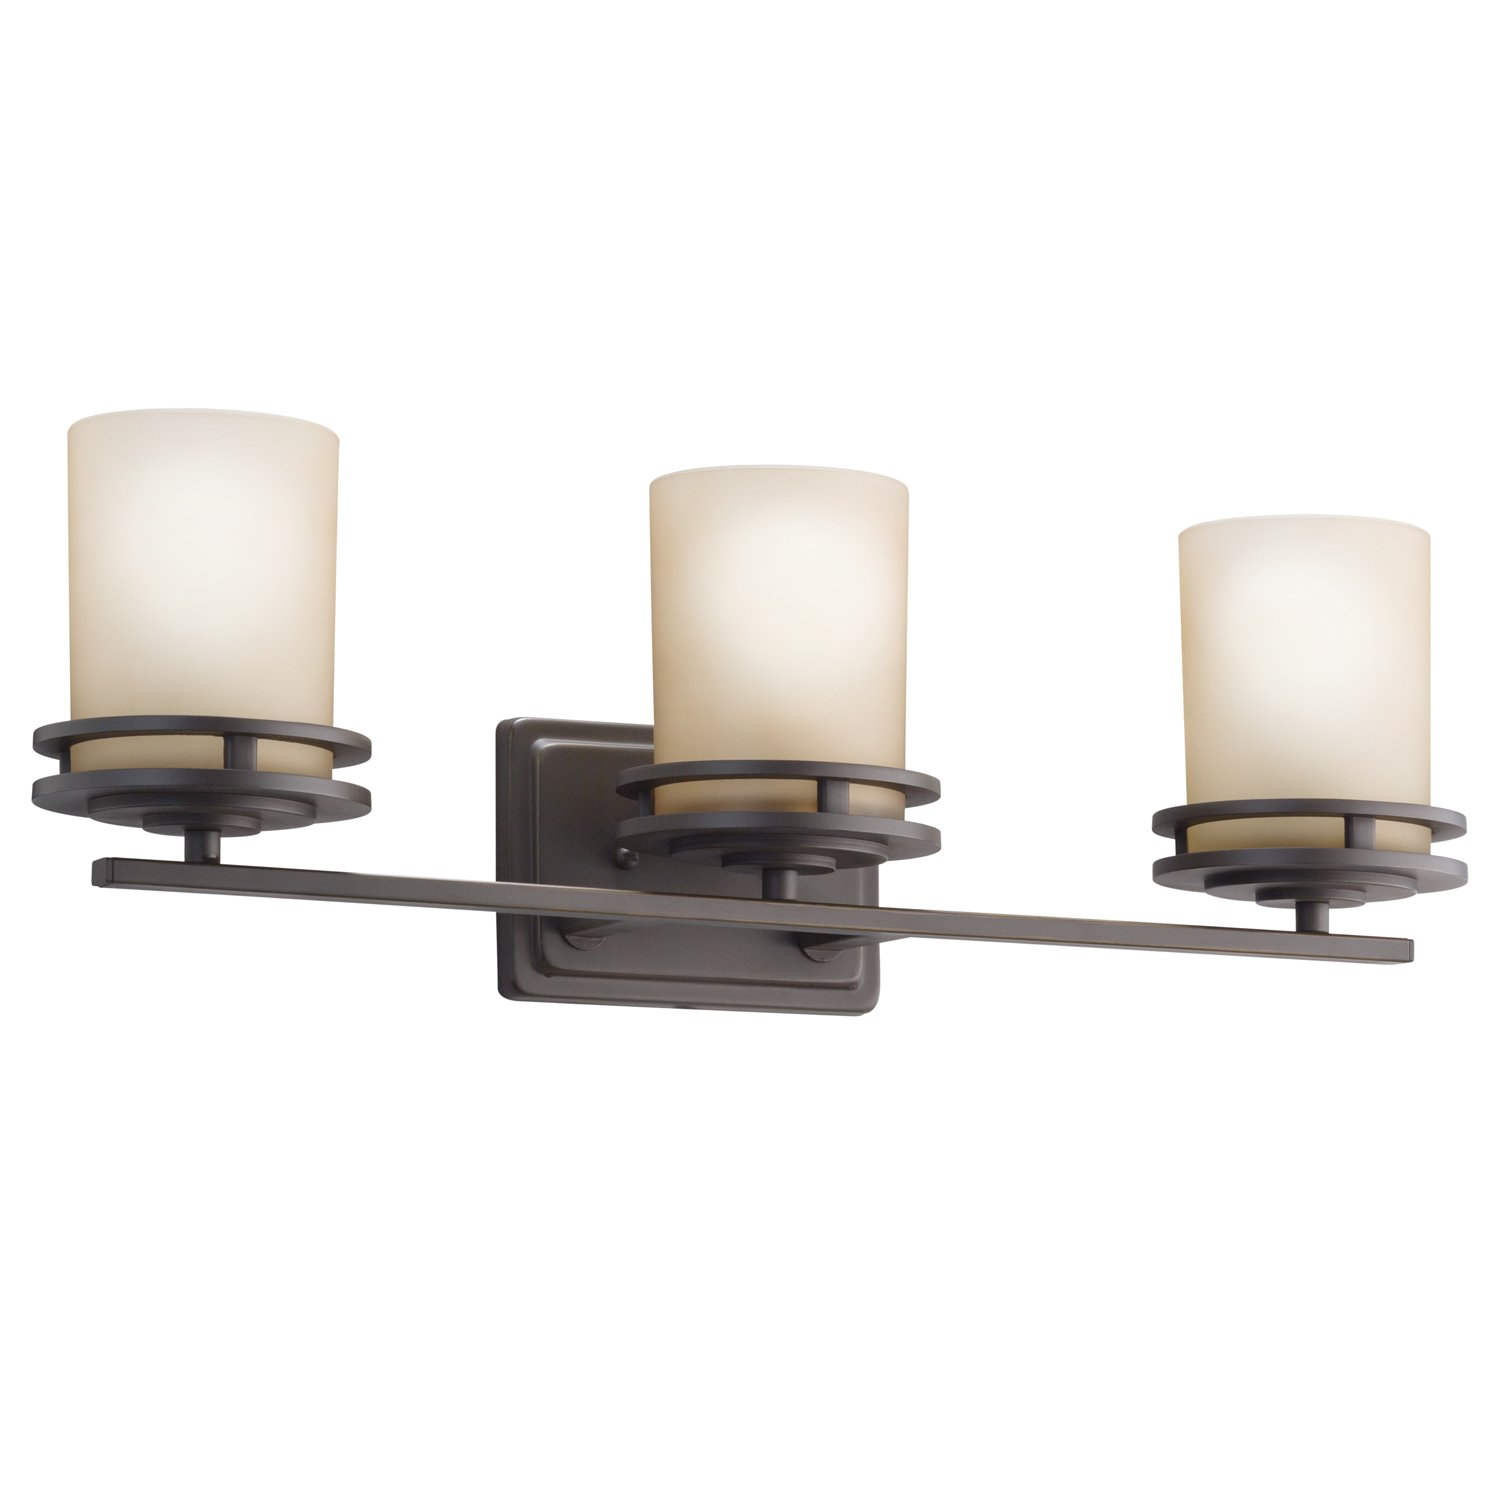 lights finish t arroyo shown inch accent pewter white item bath huntington hlb light craftsman double vanity image bar magnifying cfm in and opalescent glass wide